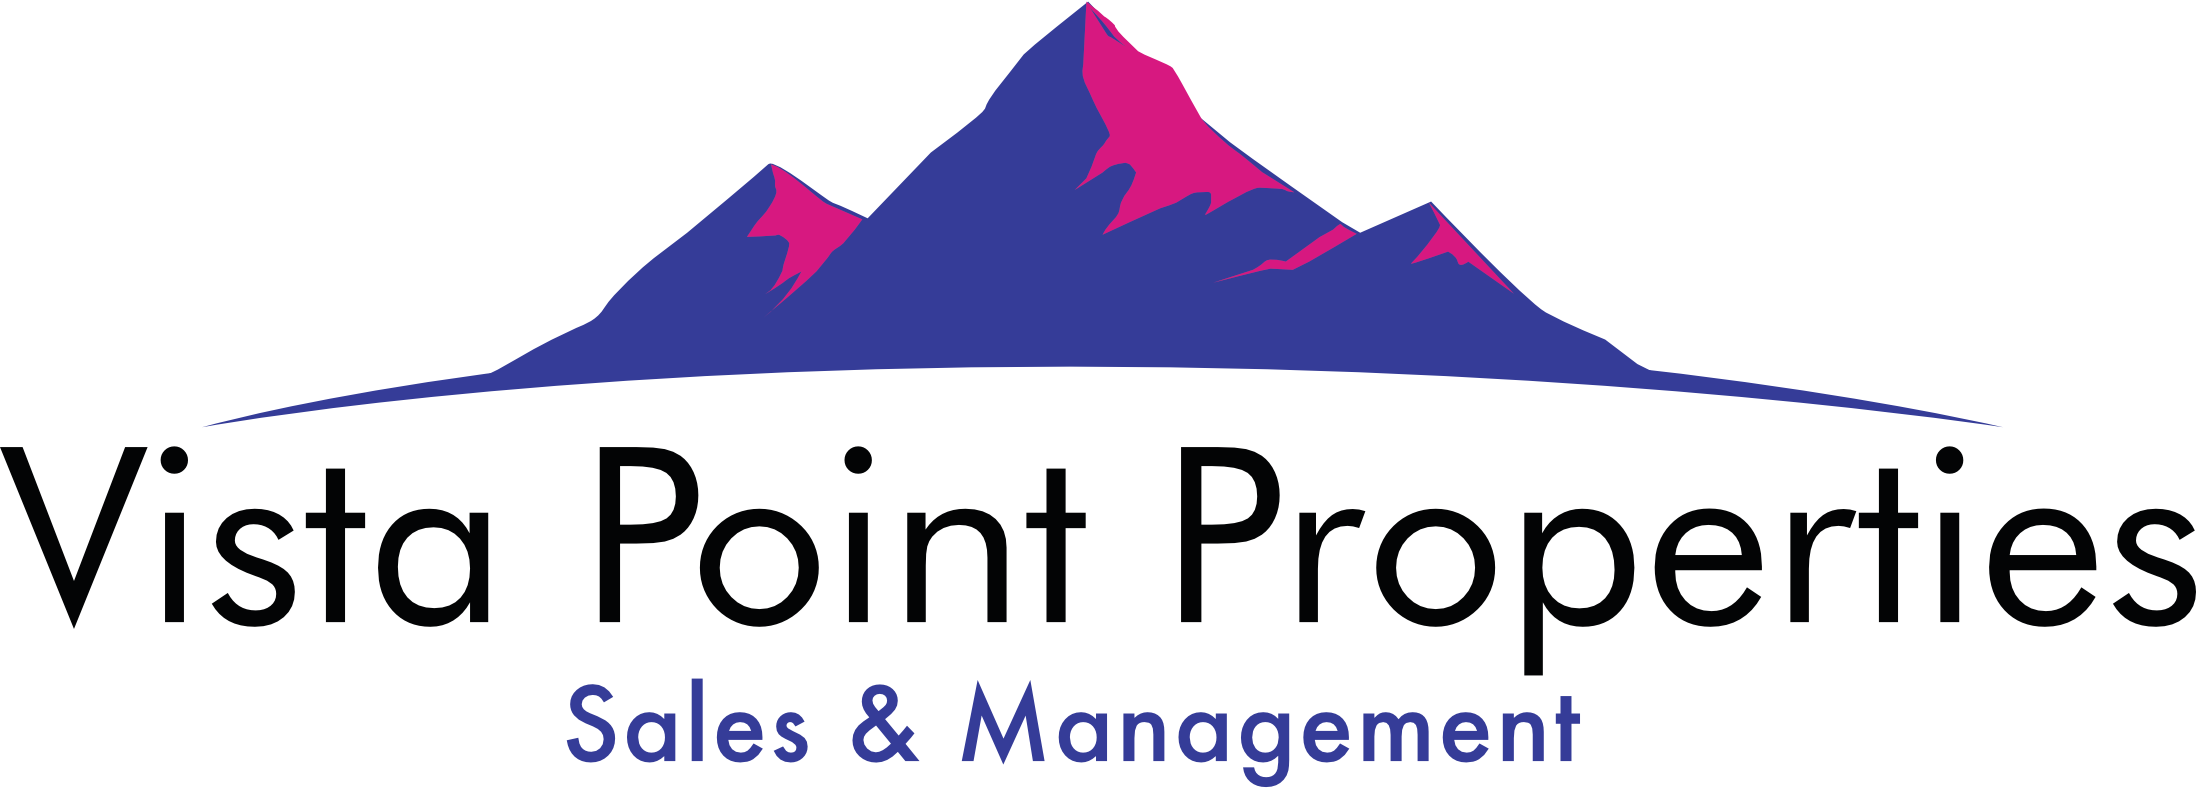 Vista Point Properties |   Policies